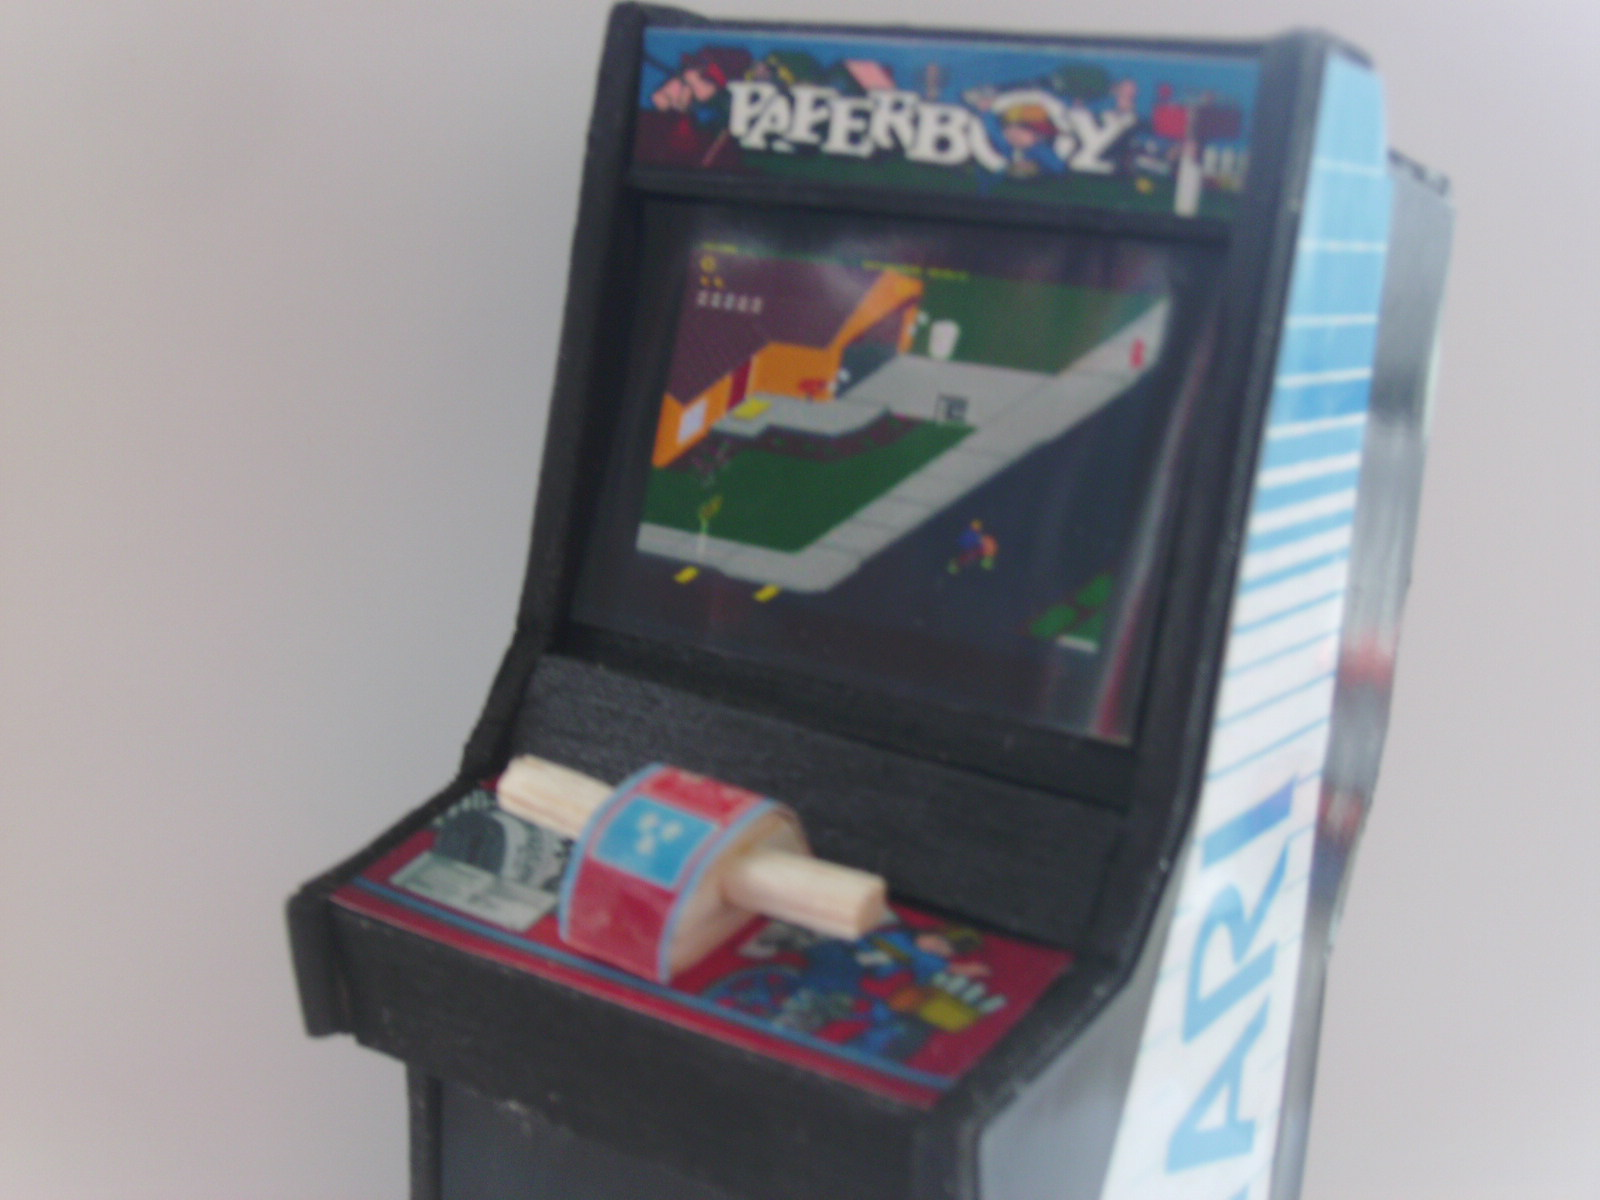 Retro Heart Paperboy Scale Arcade Model